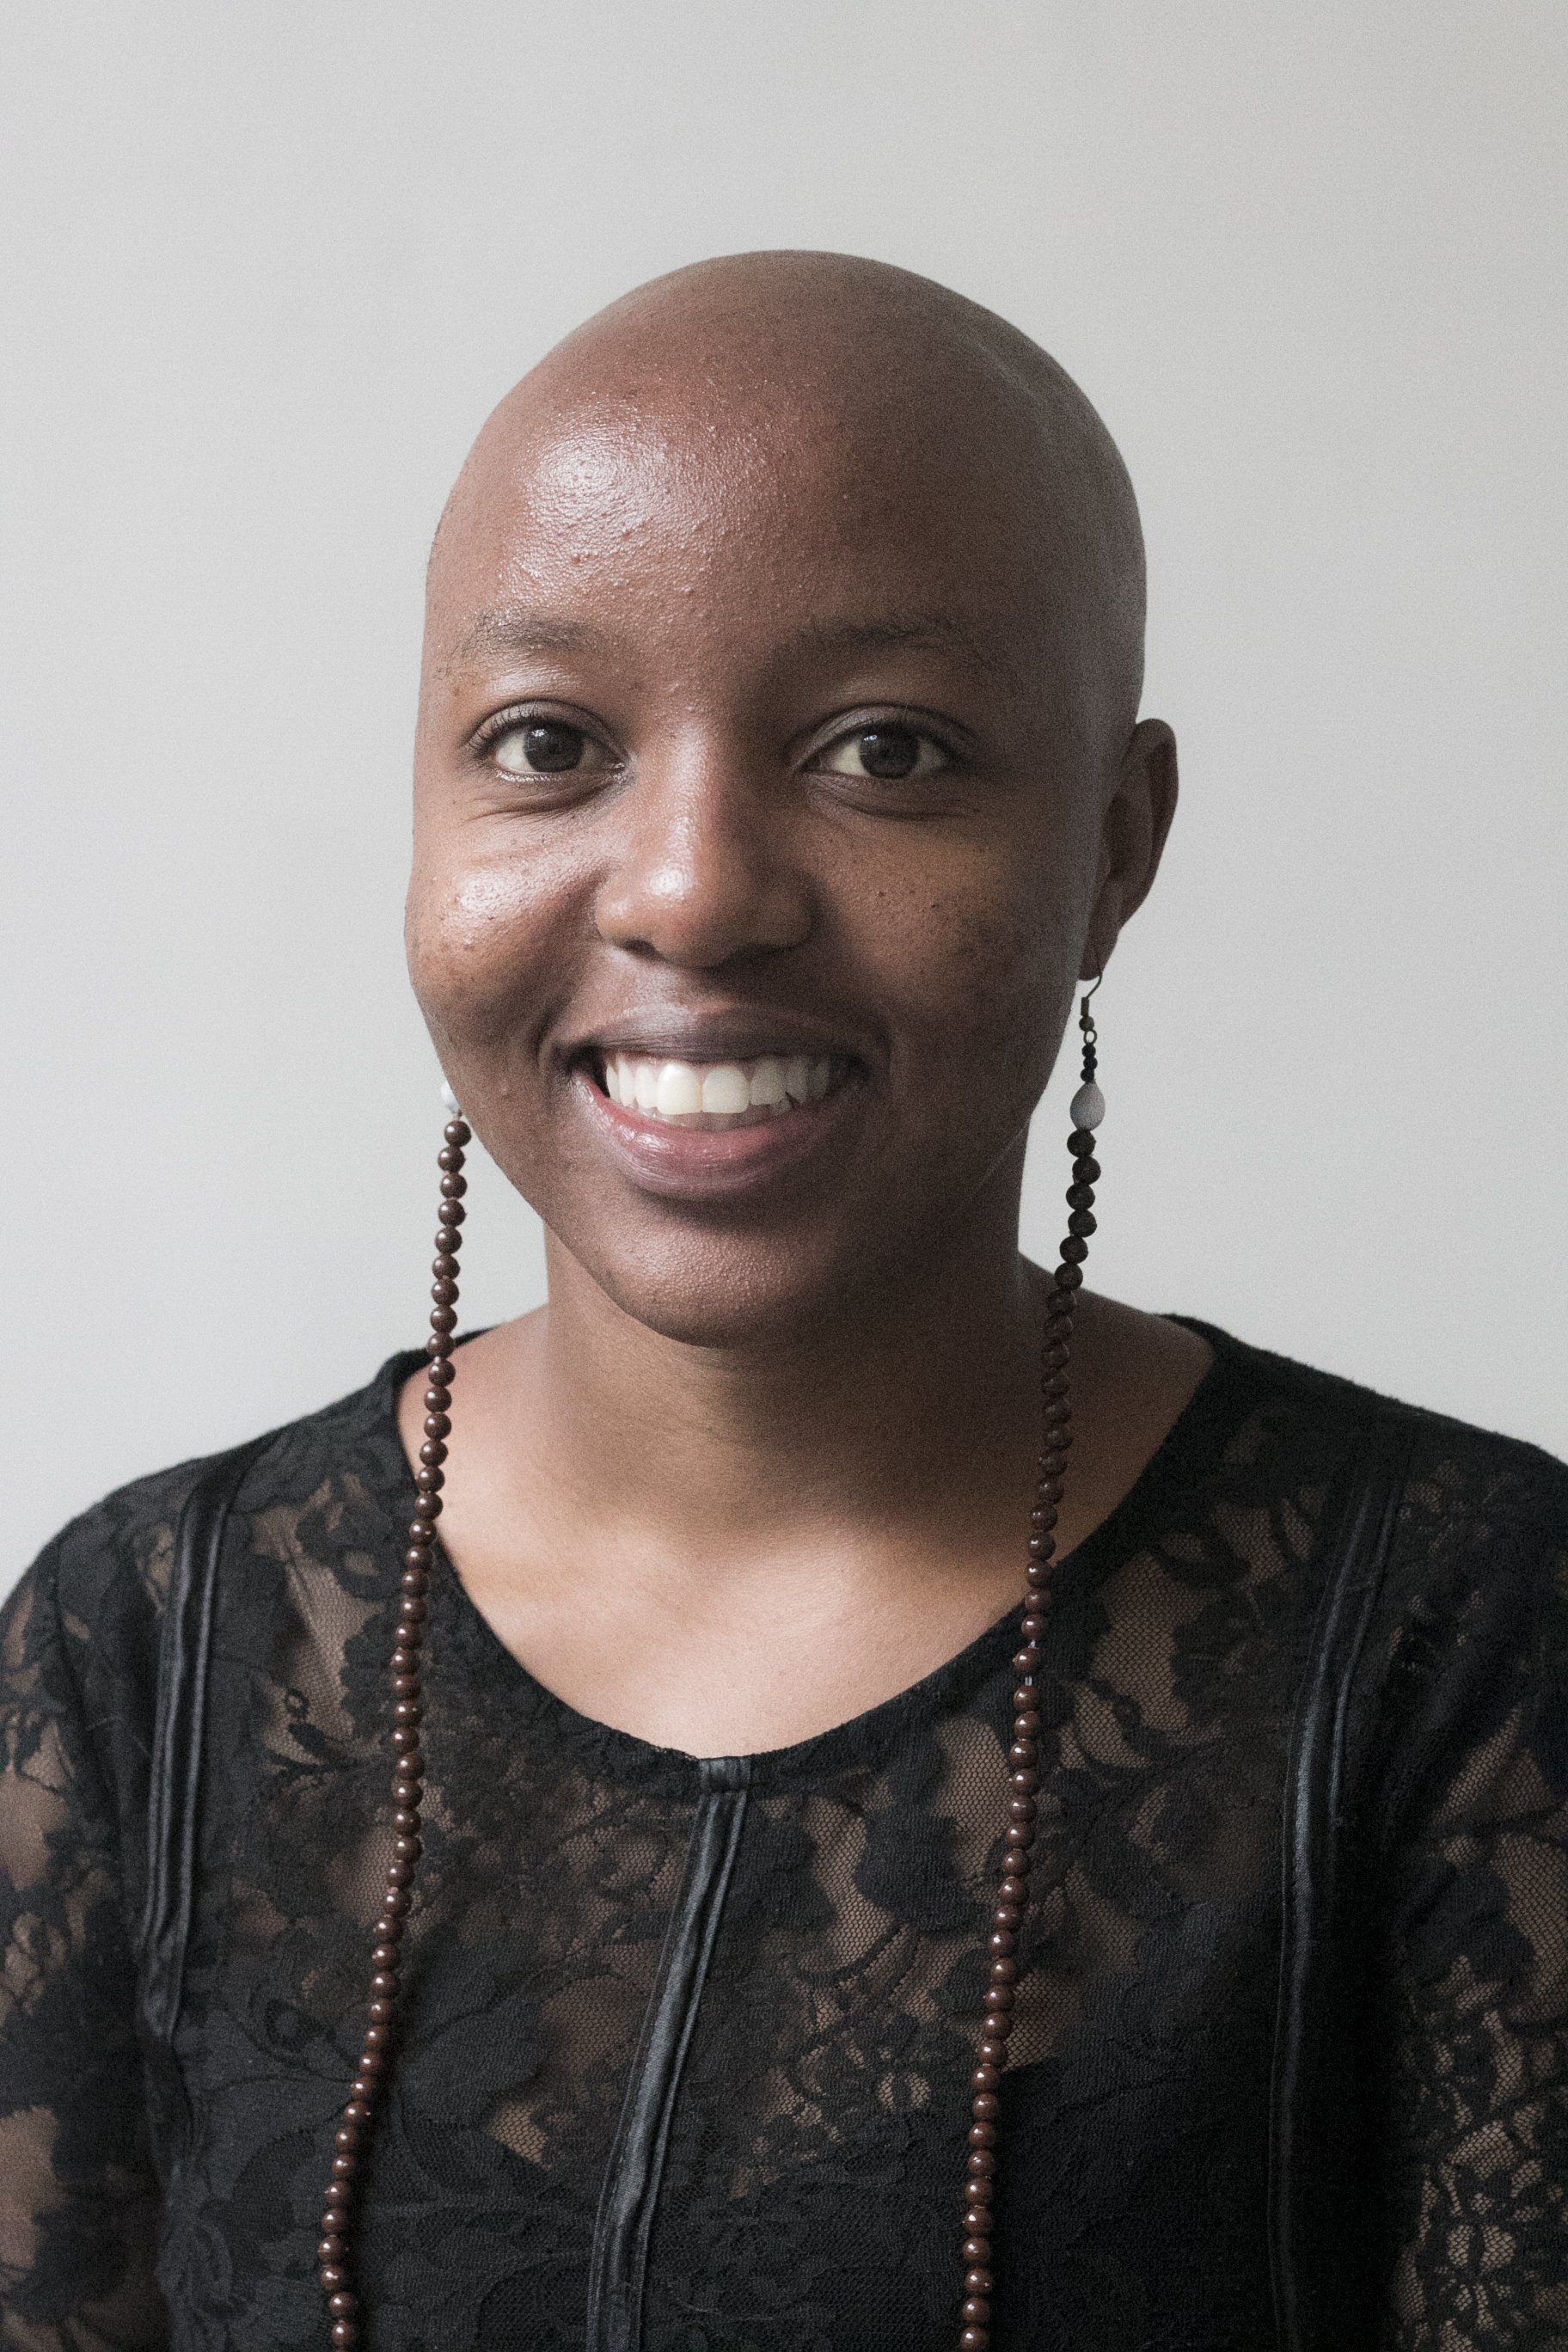 Busisiwe Mahlangu, writer and poet, Mamelodi, Pretoria, winner of the Tshwane Speak Out Loud Youth Poetry Competition (2016/2017), founder of Lwazilubanzi Project, author of Surviving Loss, pan african, feminist, impepho press, earrings, bangles